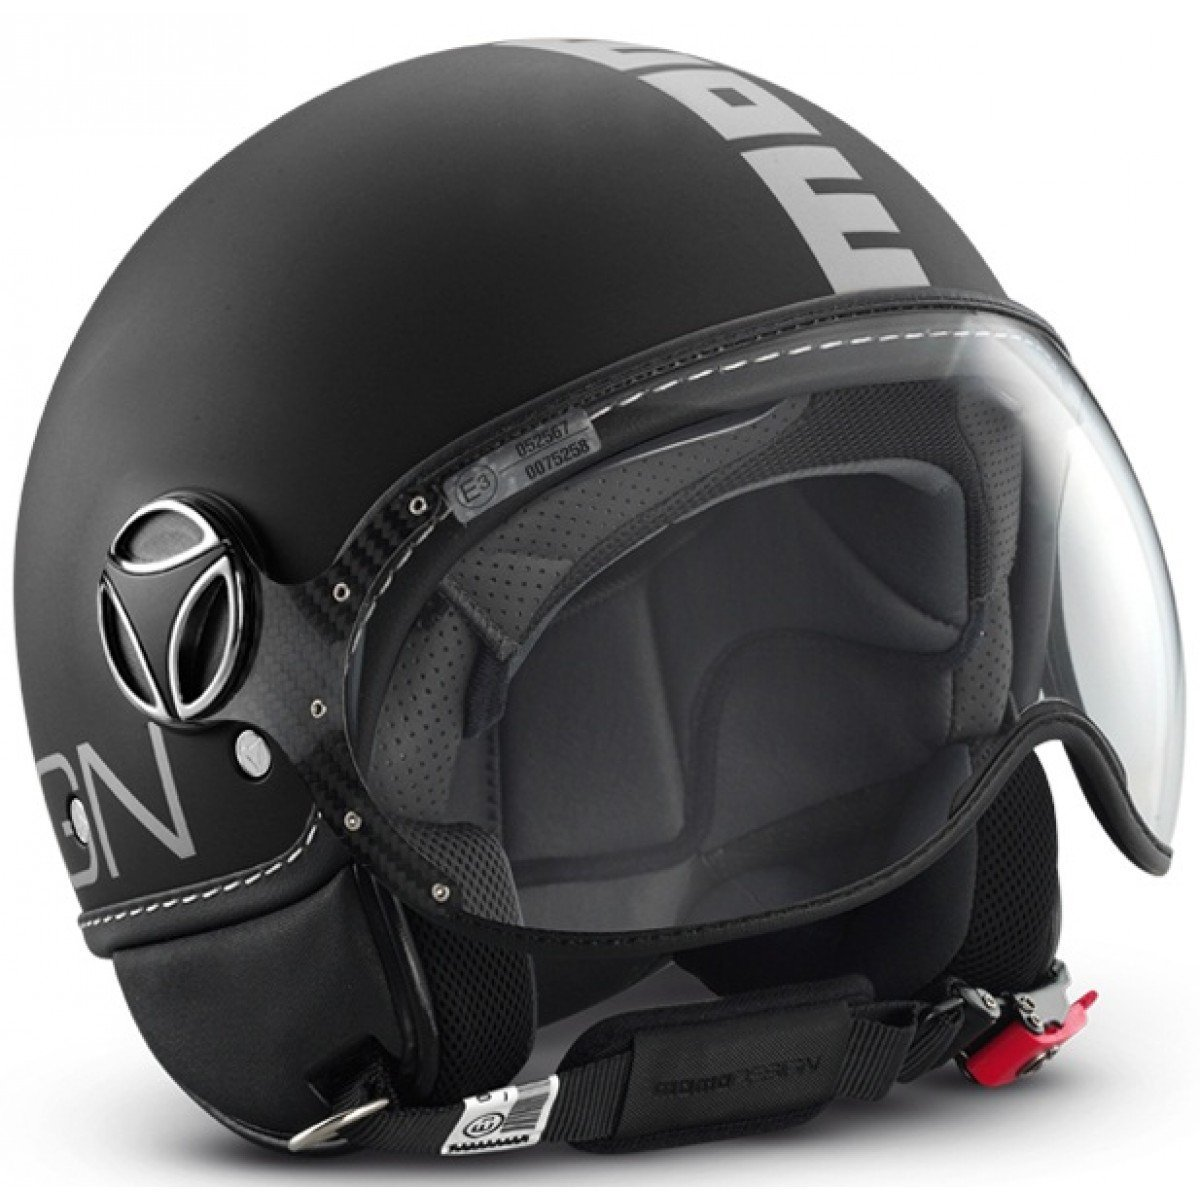 Momodesign. Casco FGTR